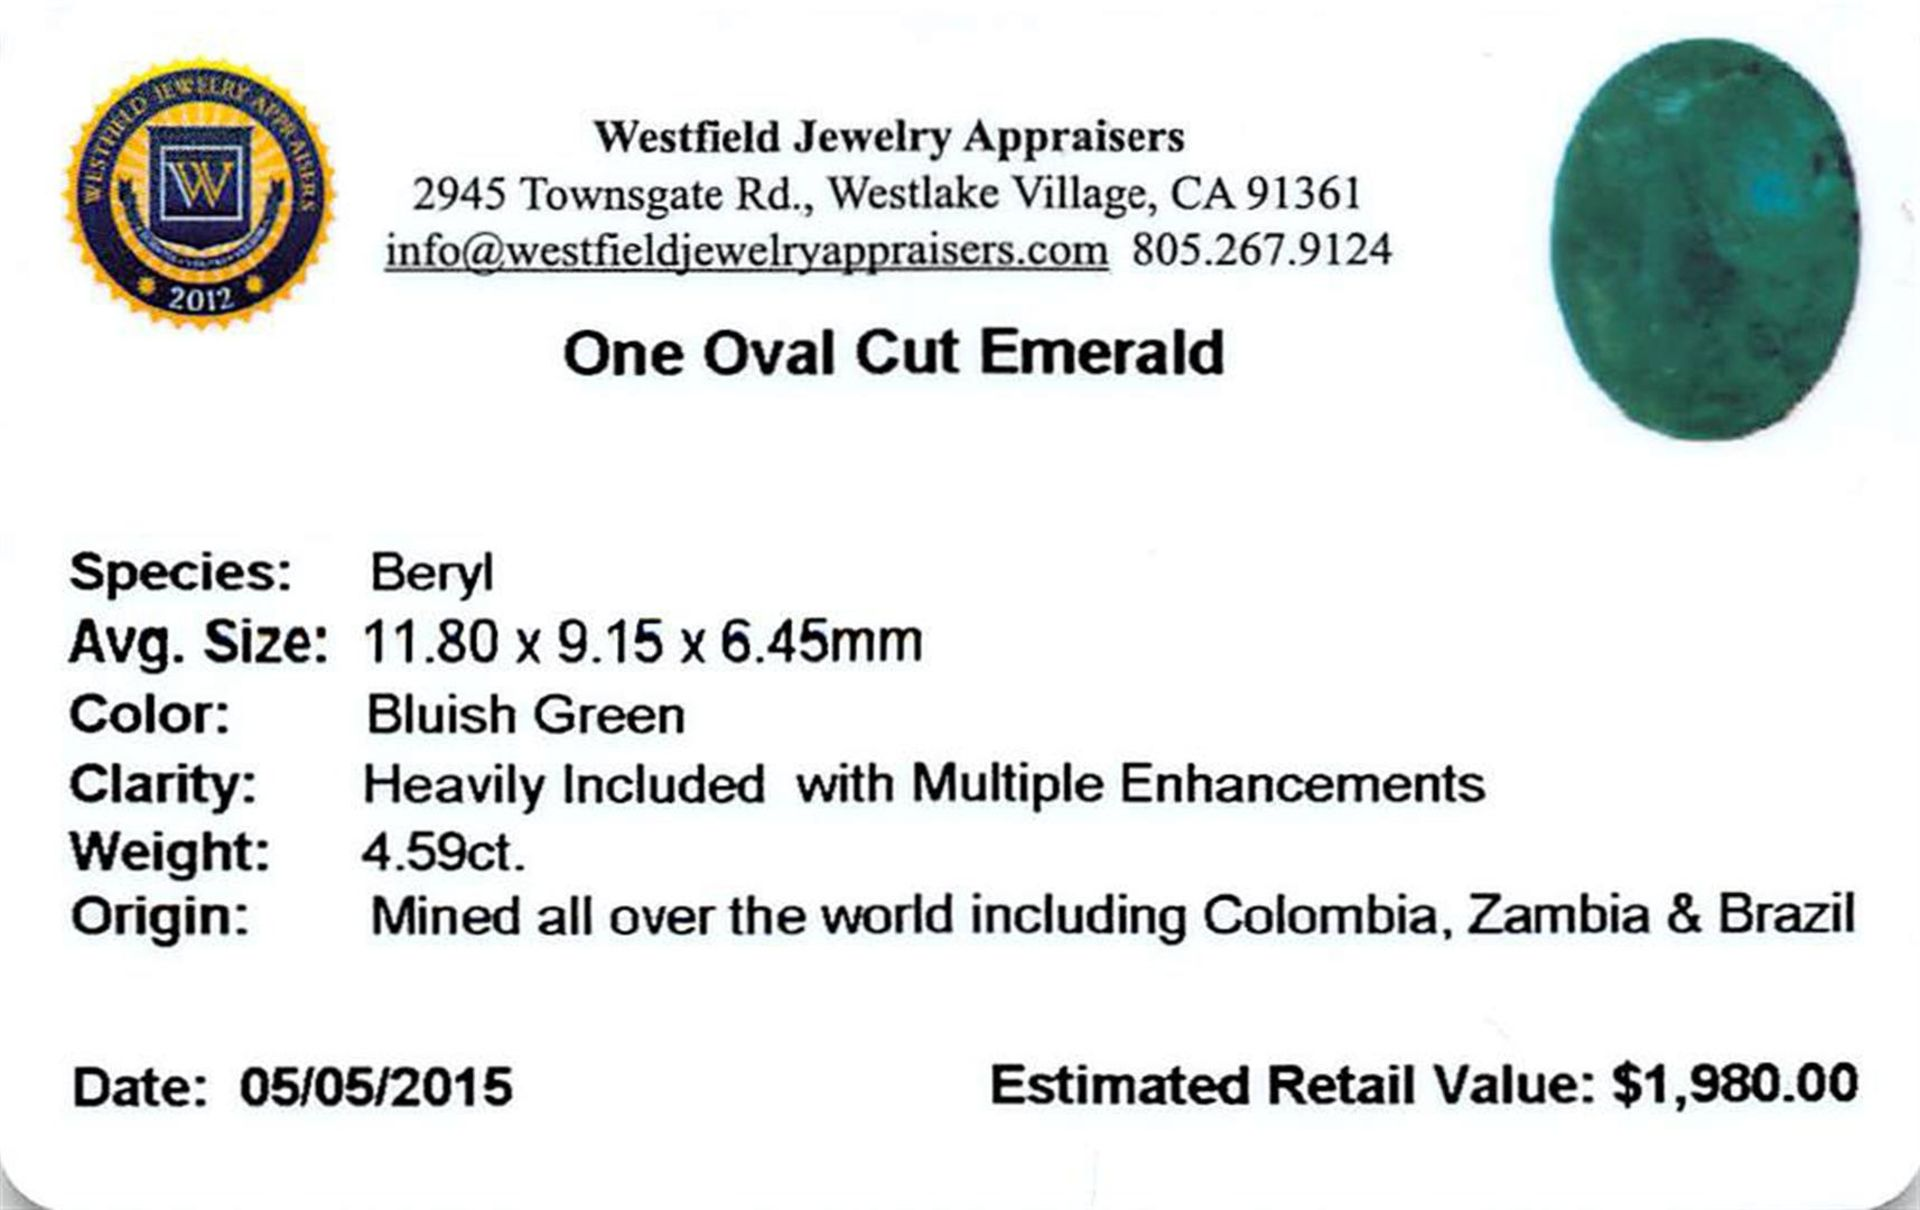 4.59 ctw Oval Emerald Parcel - Image 2 of 2